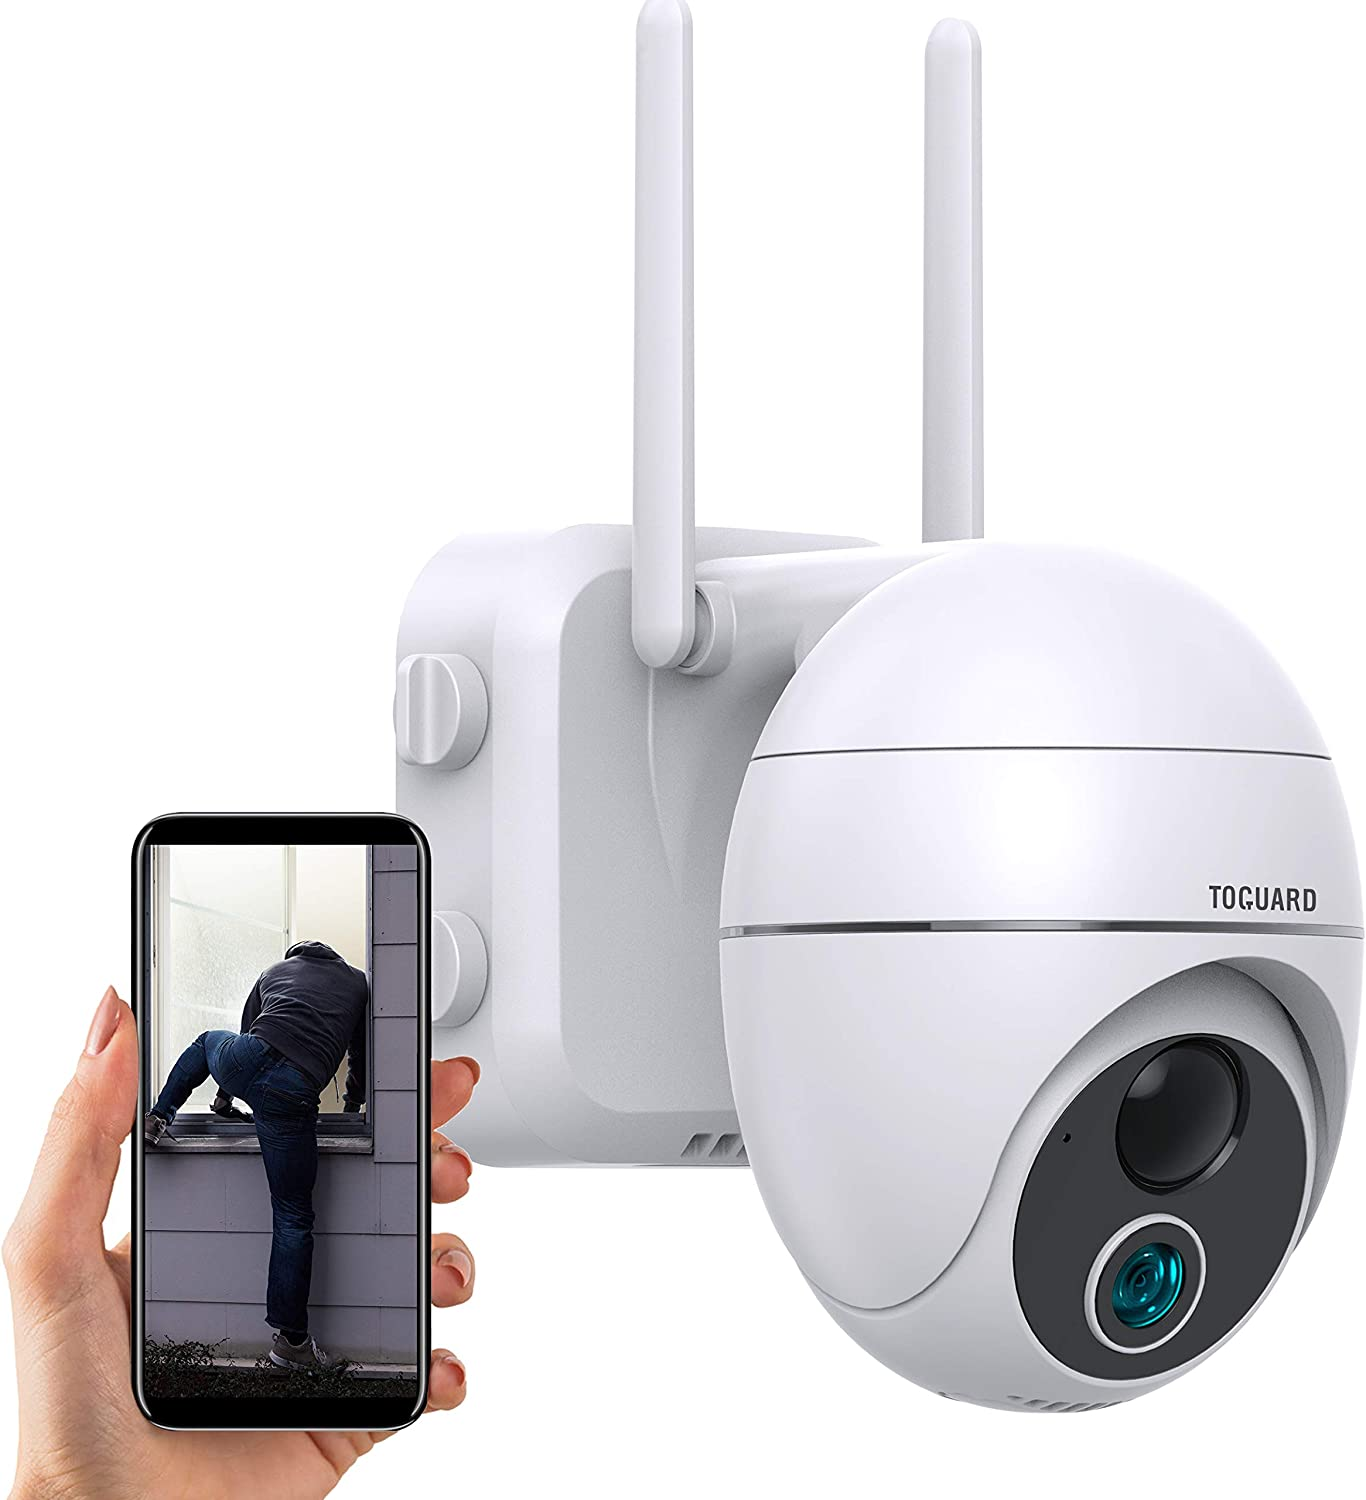 TOGUARD Wireless Security Camera Outdoor WiFi, Battery Powered PTZ Home Security Camera With Two-Way Audio, 15000mAh Battery WiFi Surveillance Home Cameras For Motion Detection